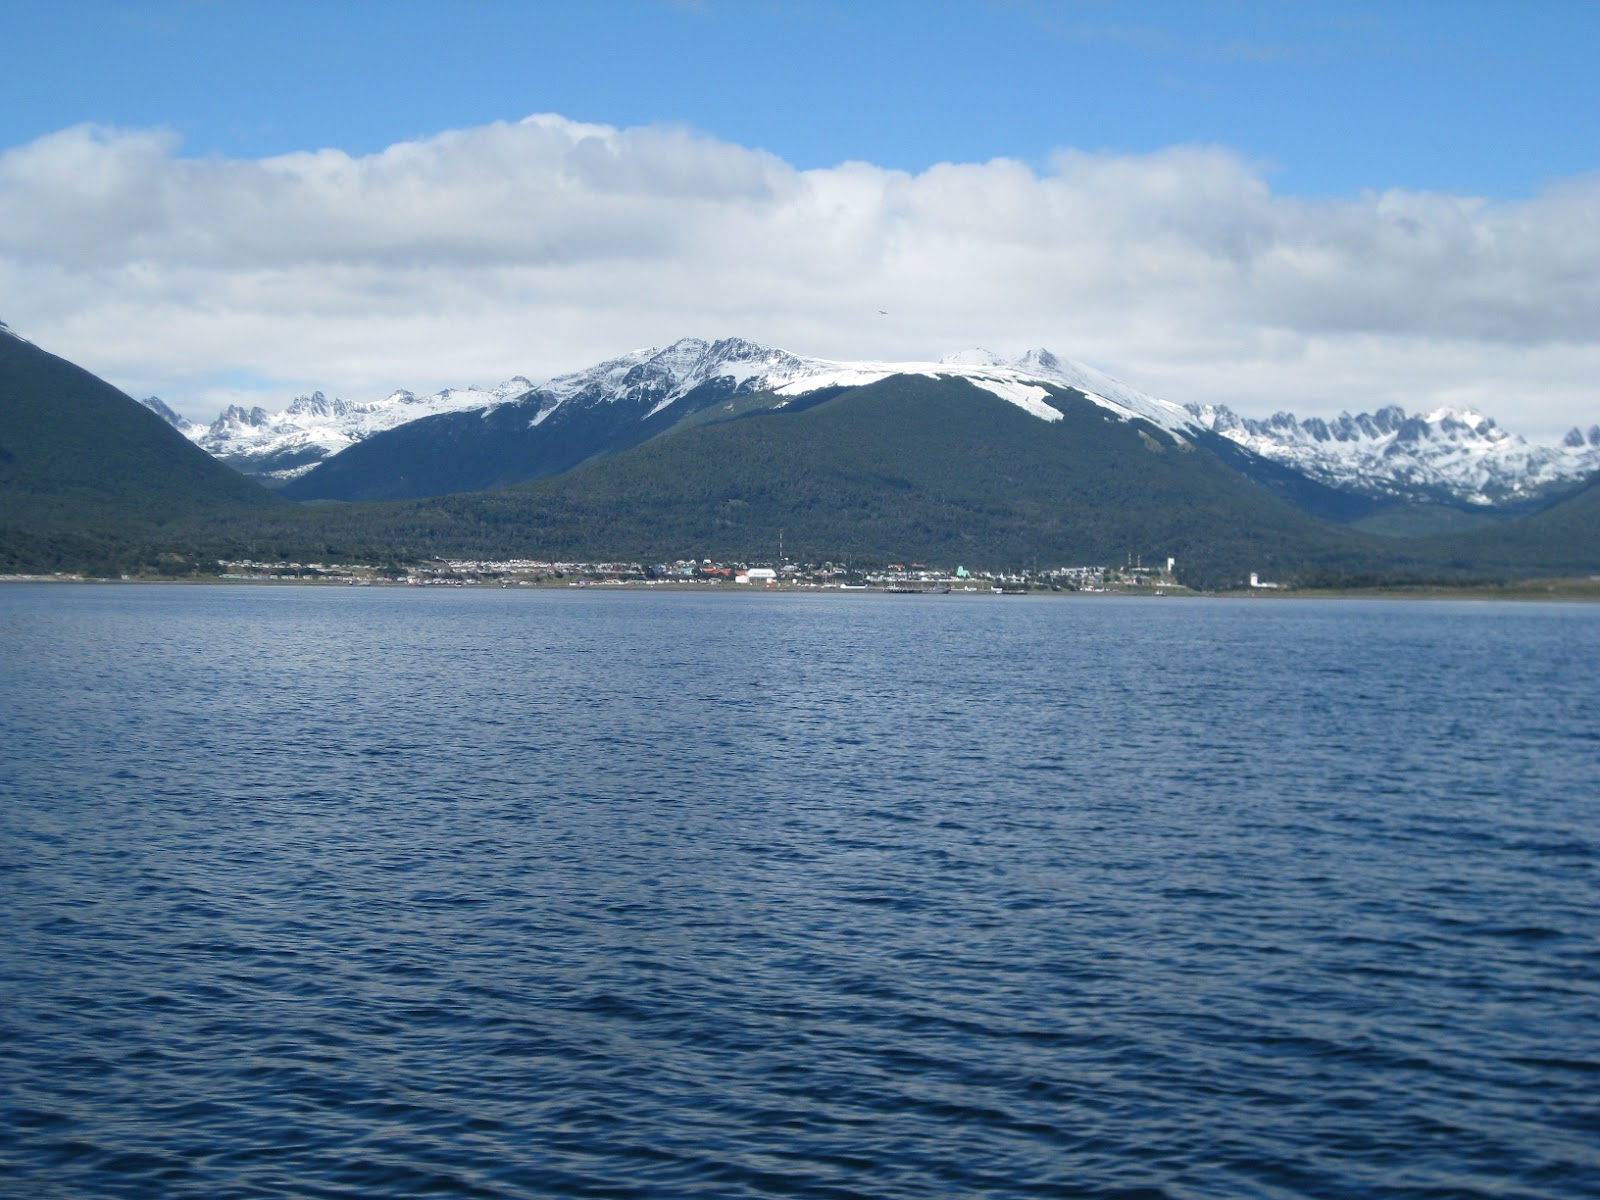 Puerto Williams. One day it will take Ushuaia's claim of southernmost city